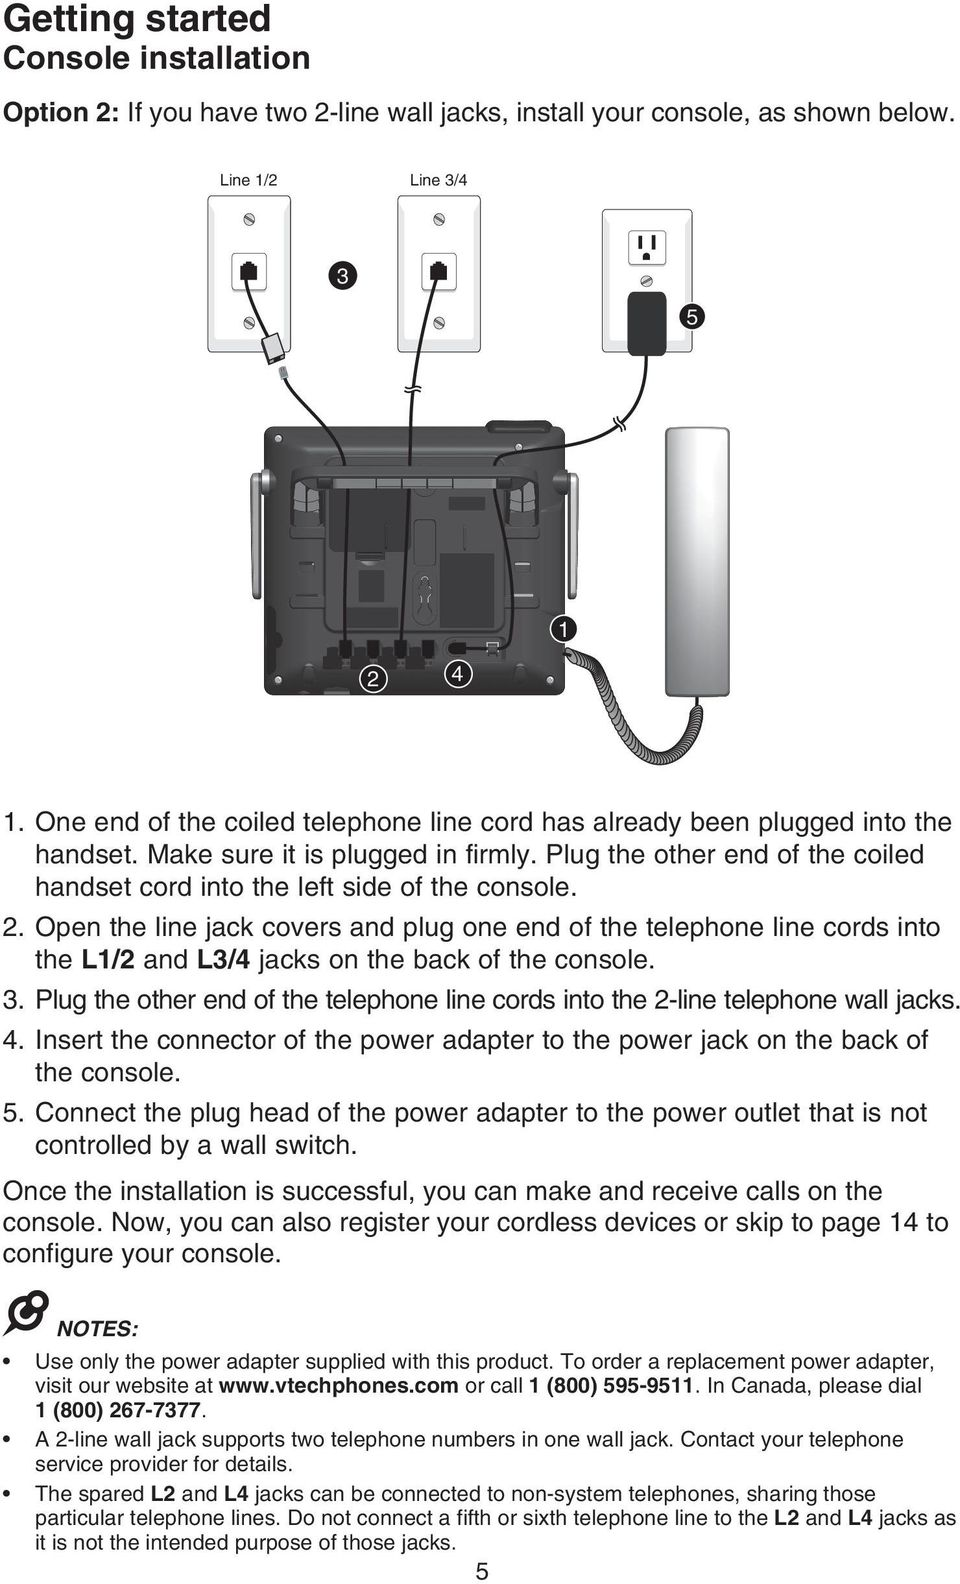 hight resolution of open the line jack covers and plug one end of the telephone line cords into the